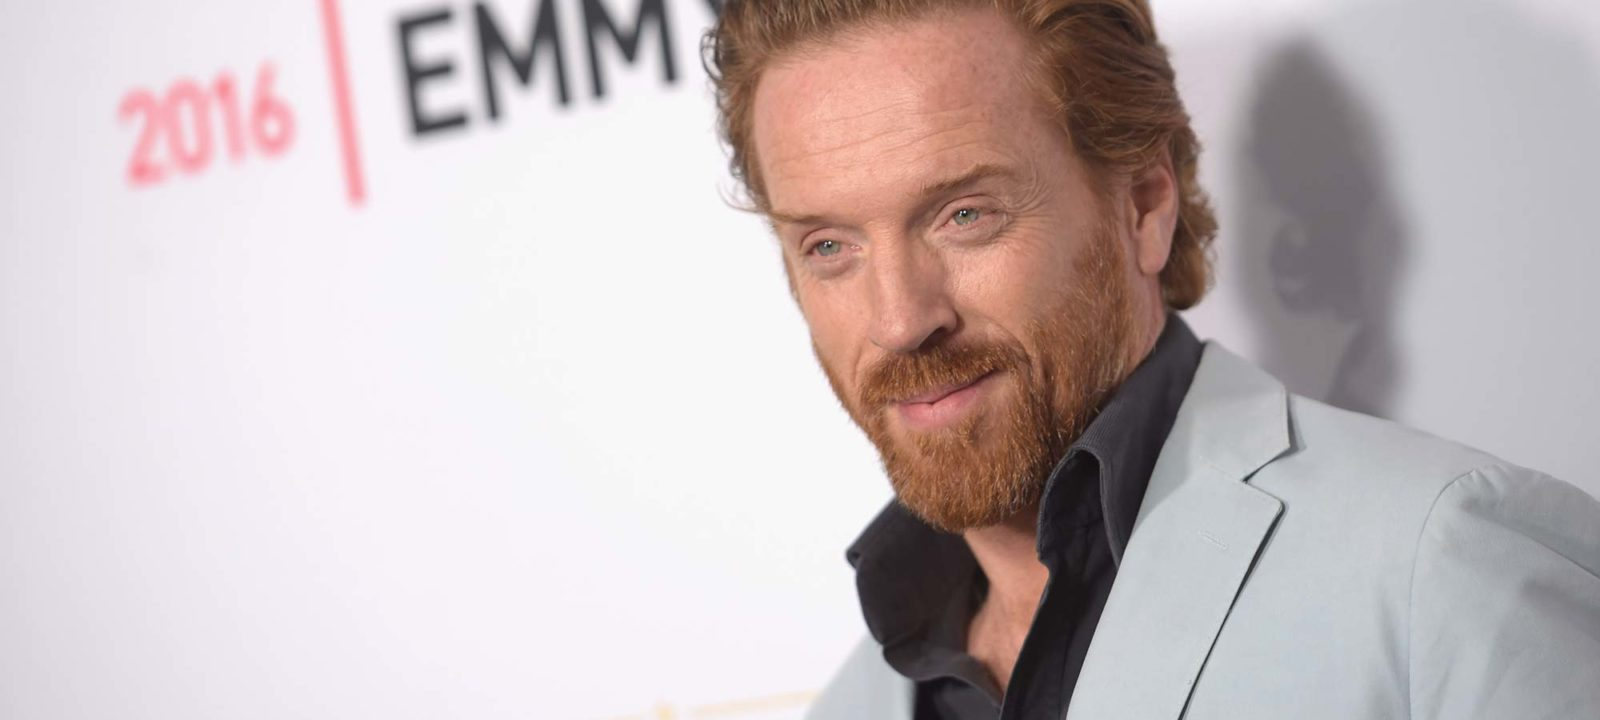 anglo_2000x1125_damianlewis_emmys